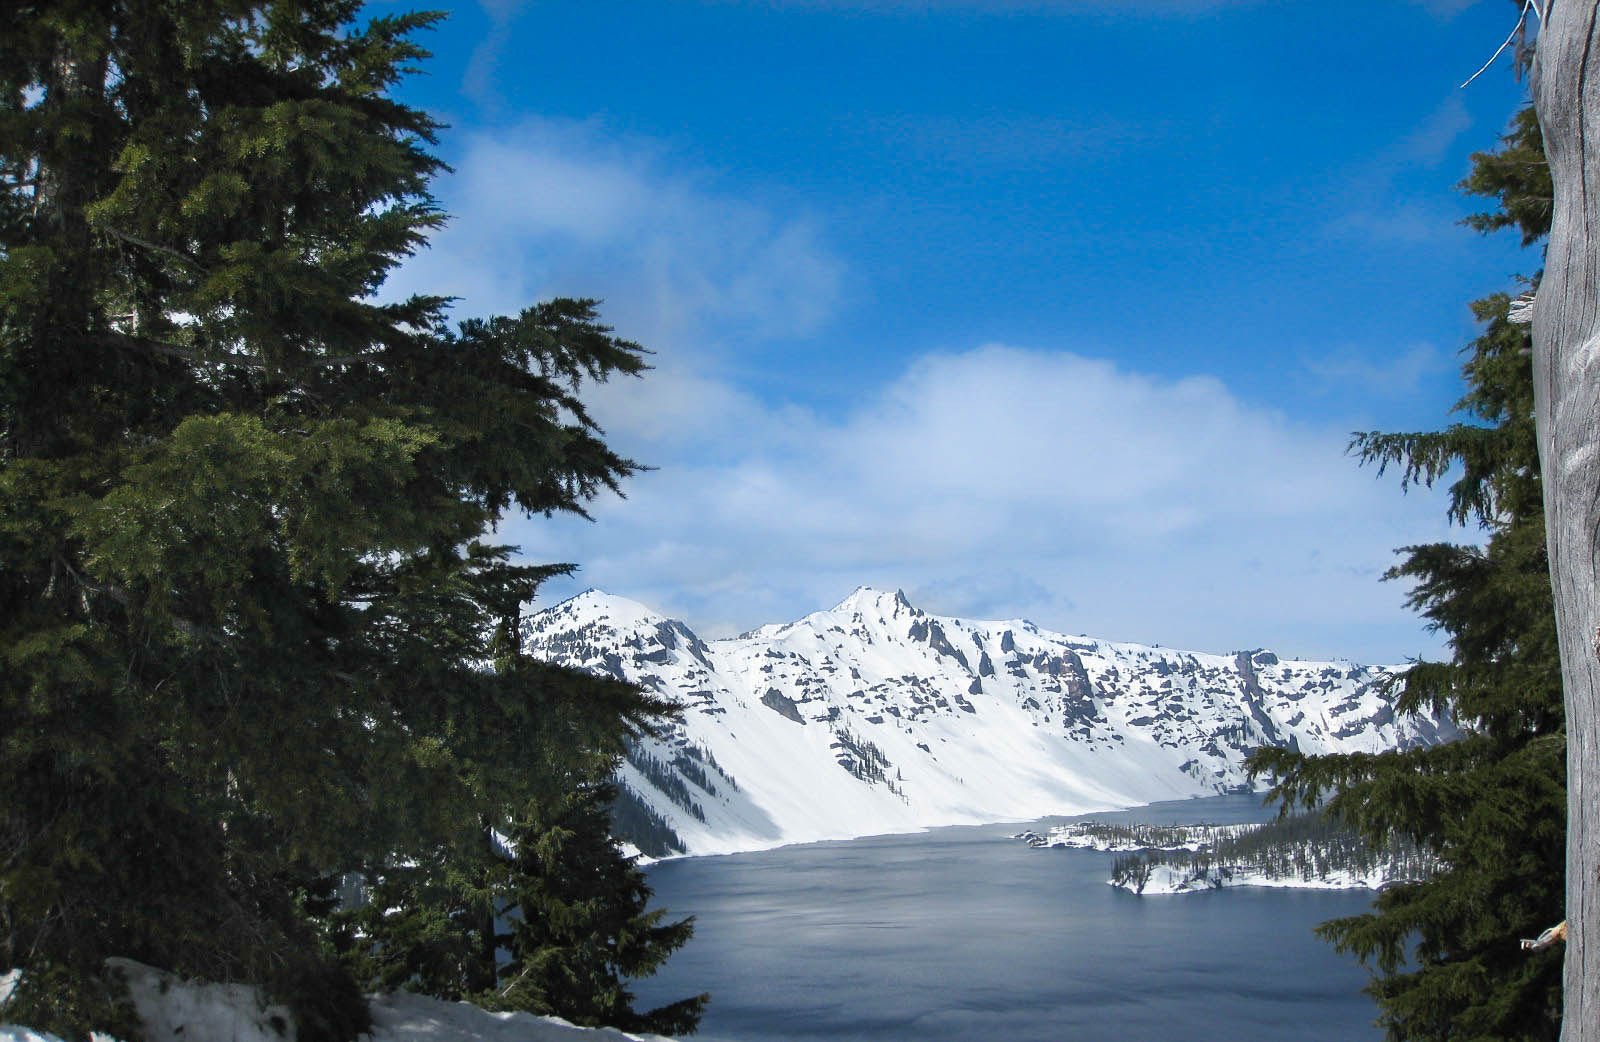 Photograph Hiking in the Crater Lake by Jersey Joe on 500px